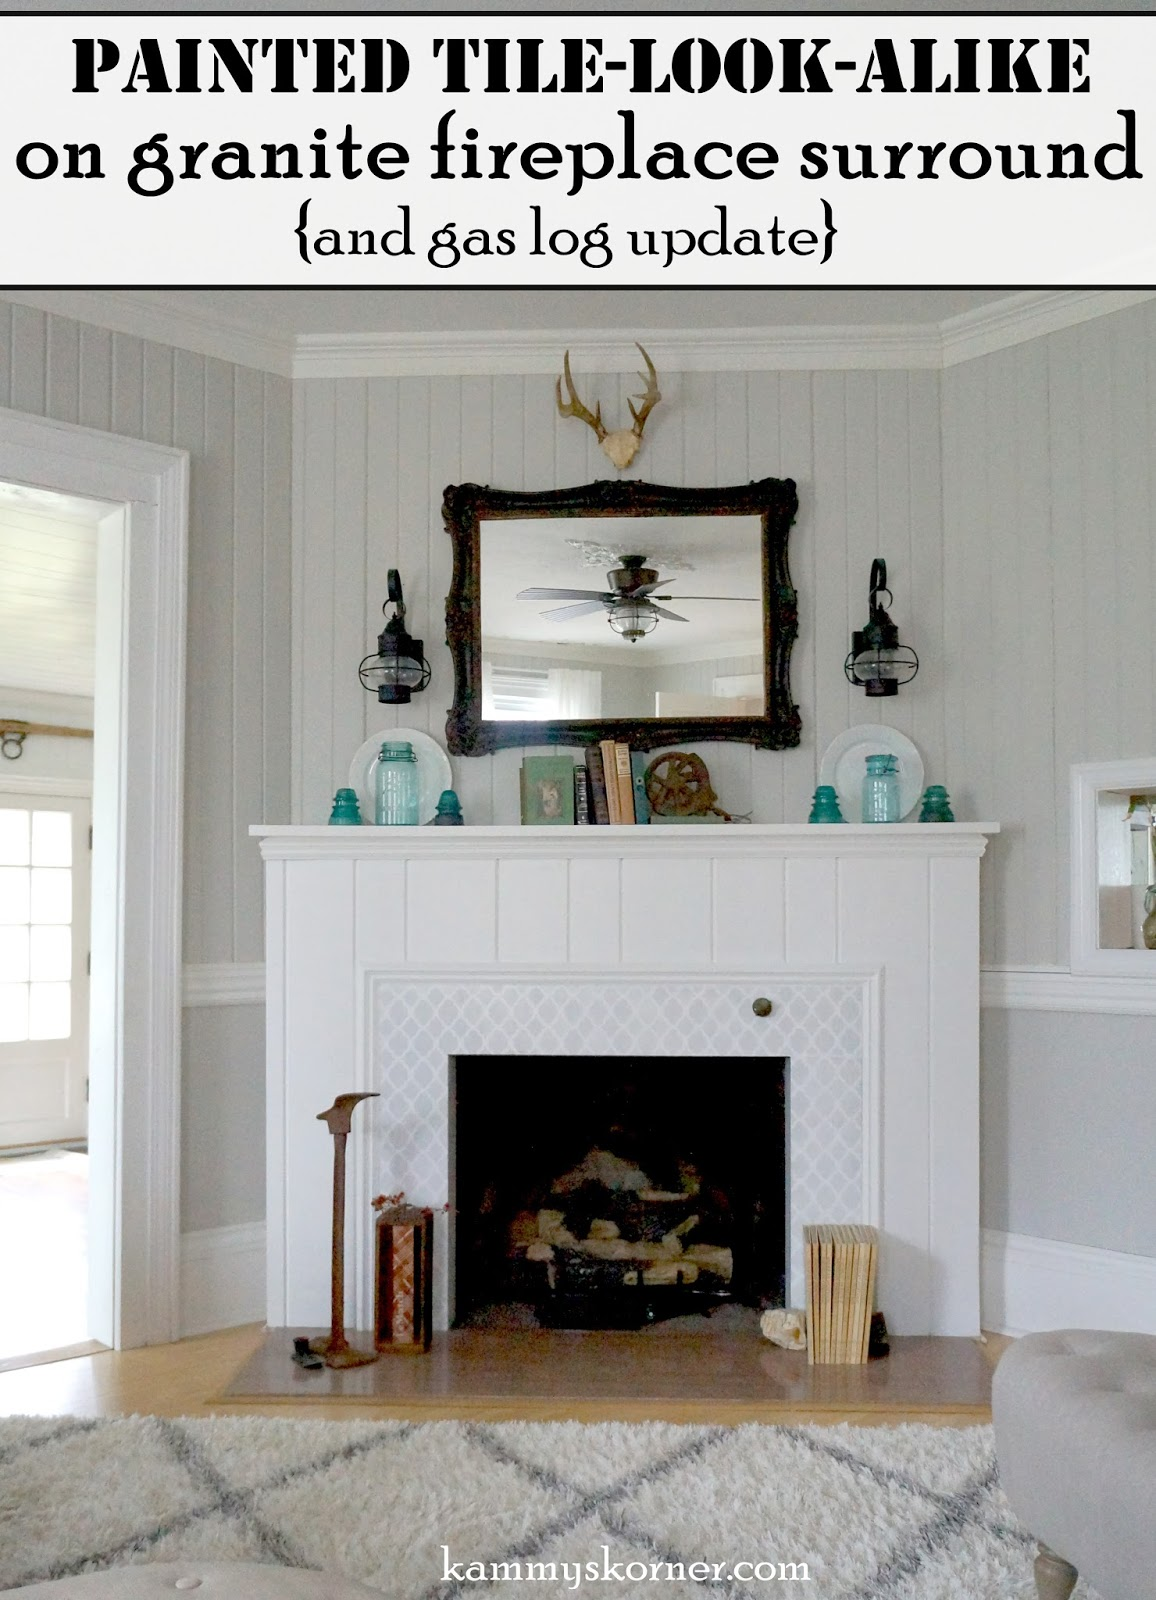 Kammy's Korner: Stenciled Granite Fireplace Surround Update